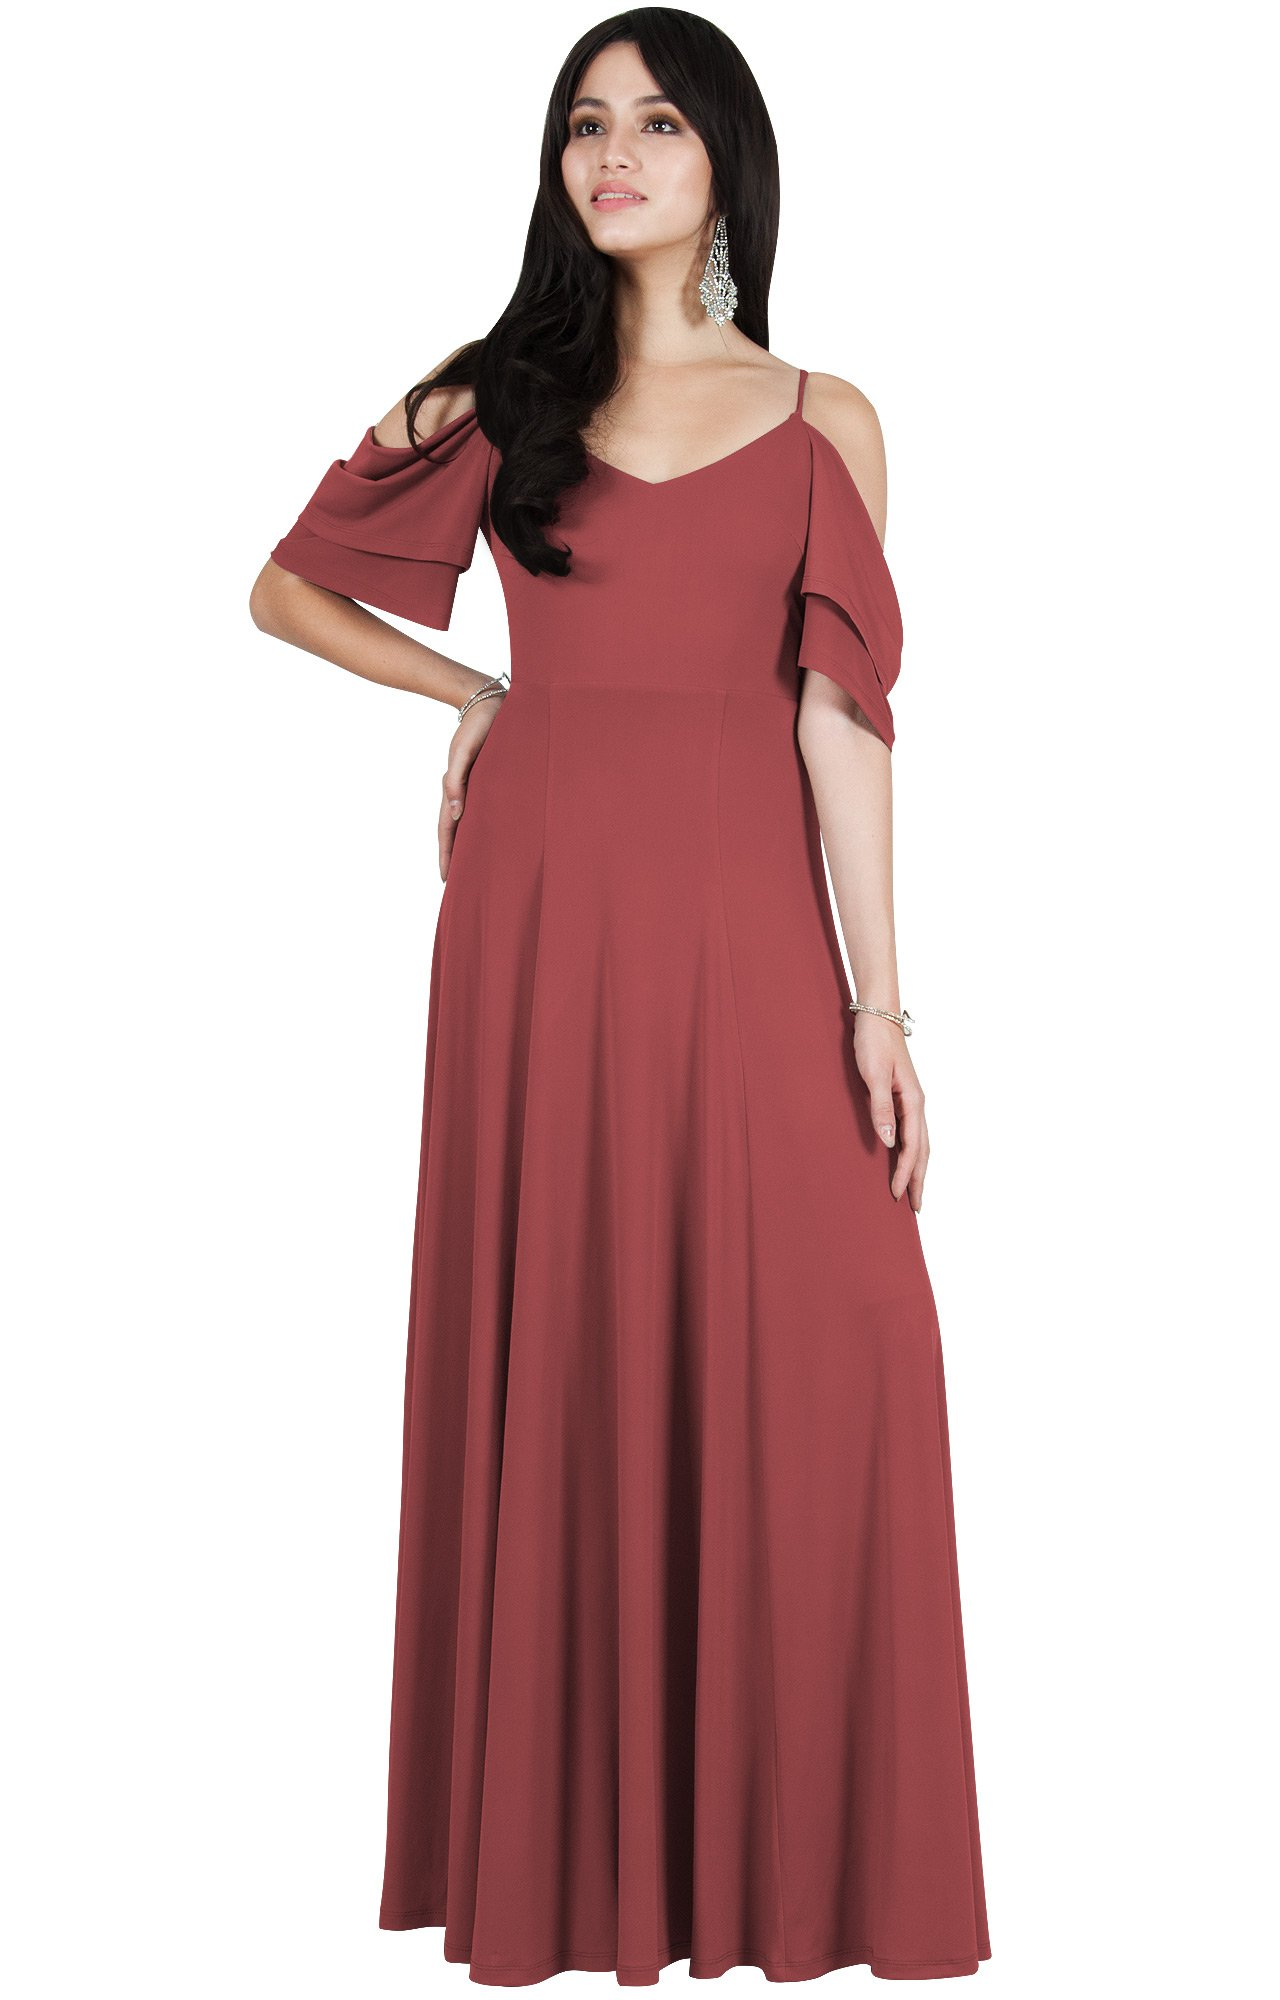 e02df817f653 Viris Zamara Petite Womens Long V-Neck Short Sleeve Flowy Sexy Cold  Shoulder Evening Cute Formal Cocktail Party Bridesmaid Wedding Party Dressy Gown  Gowns ...